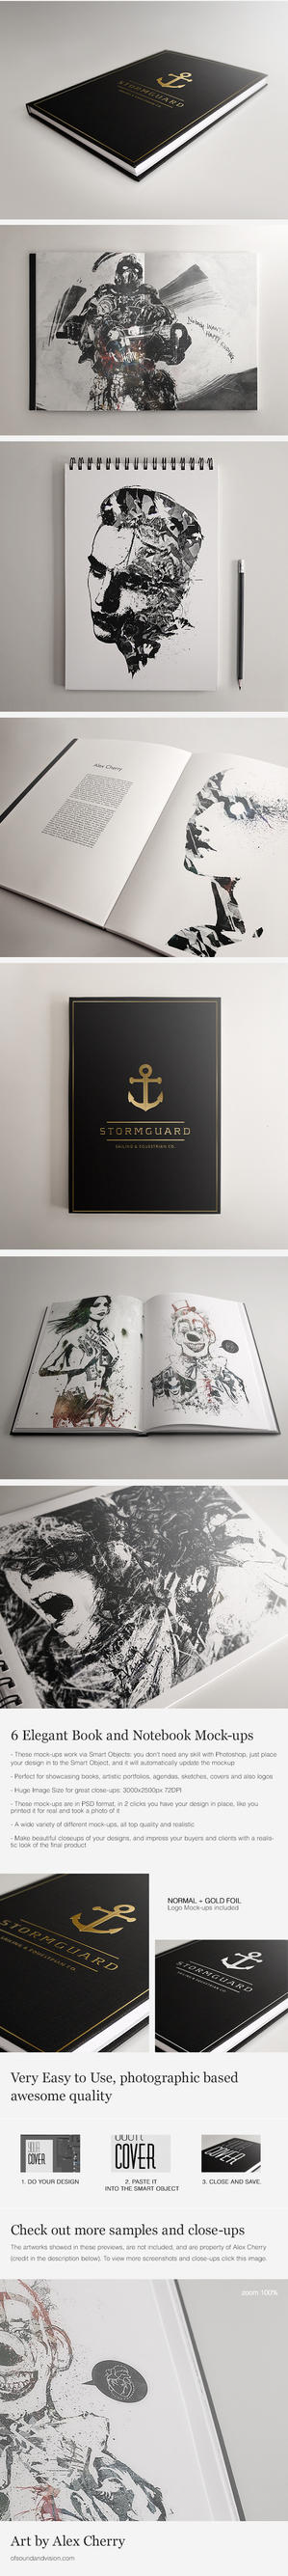 Book and Notebook Elegant Mock-ups by Giallo86